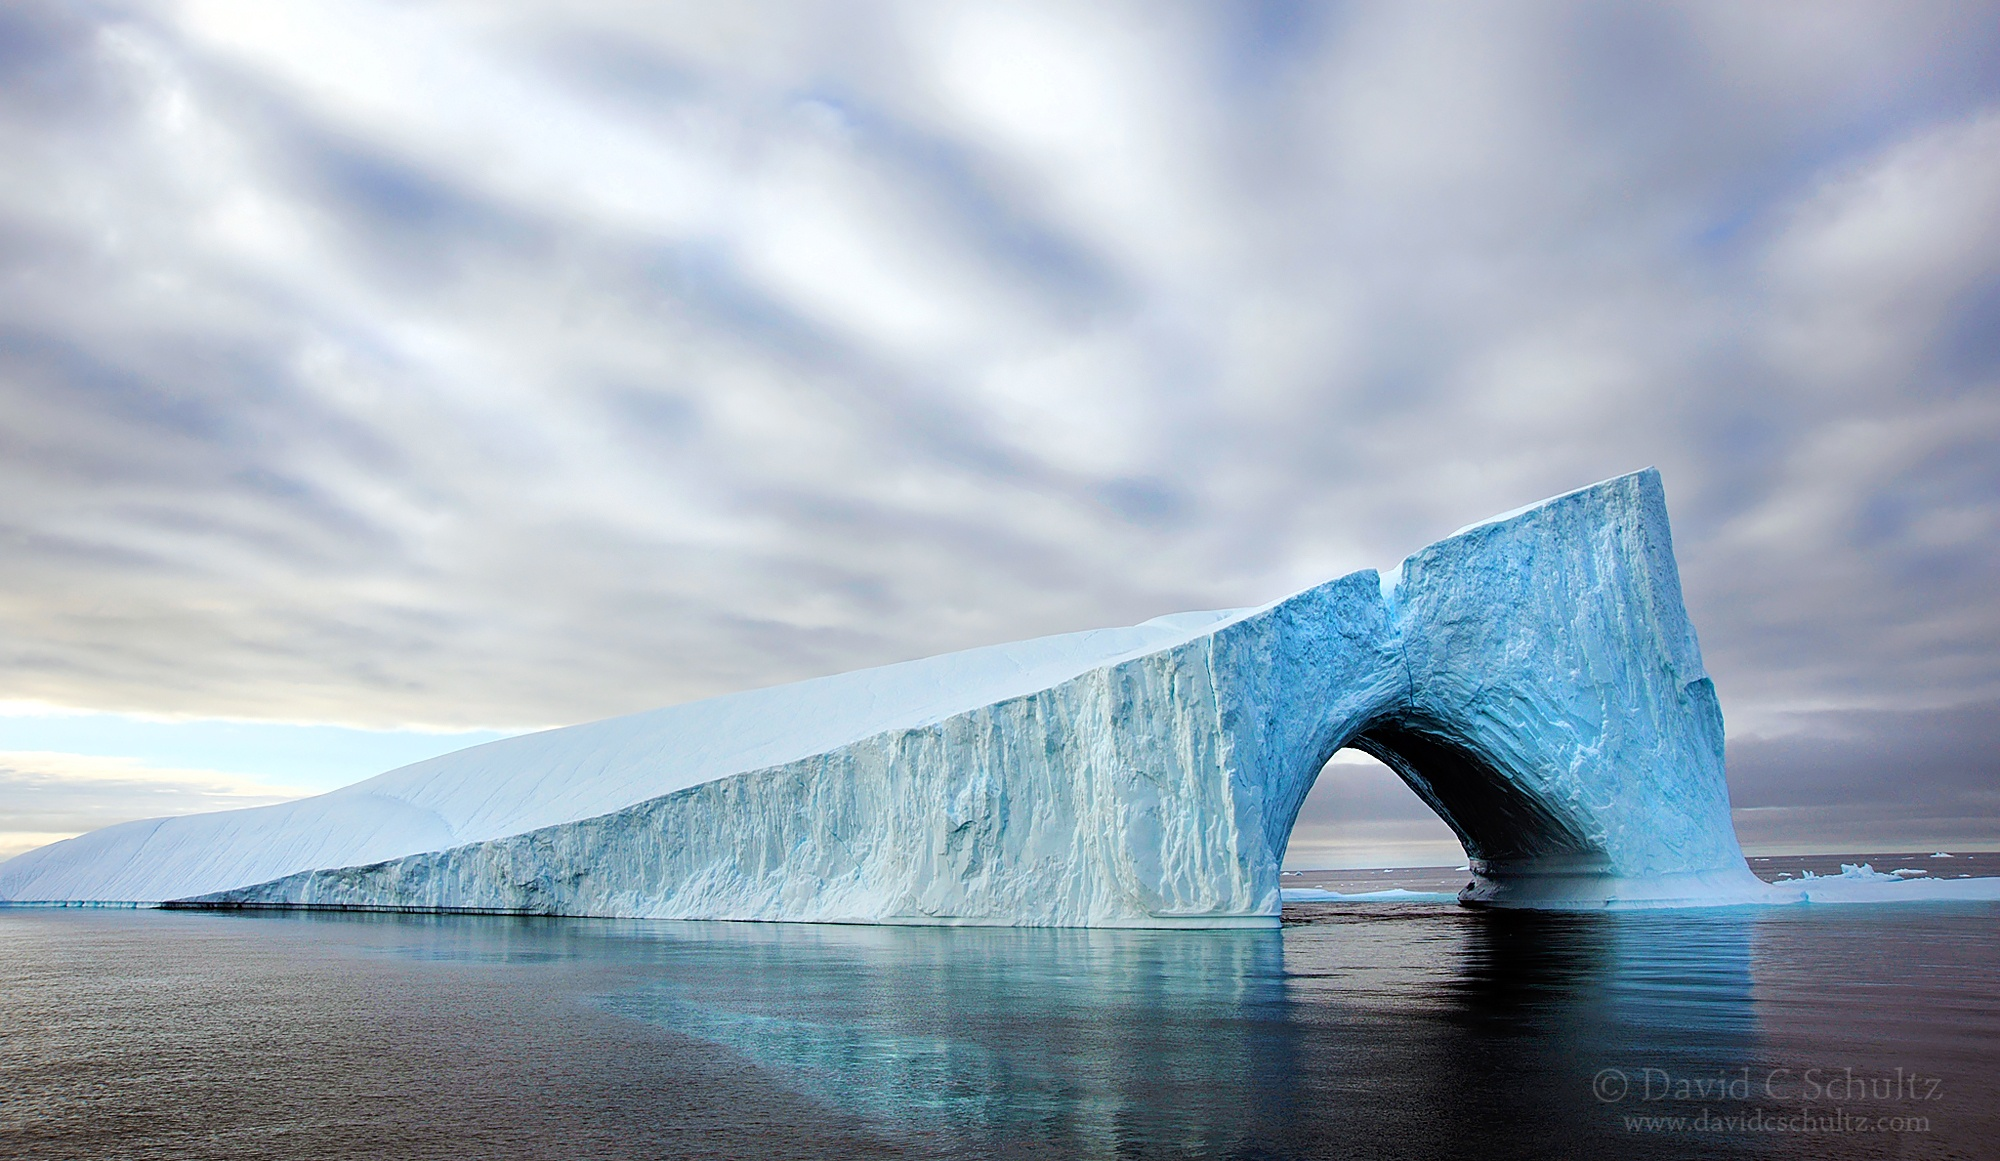 Tips For Photographing Ice, From Icebergs To Landscapes